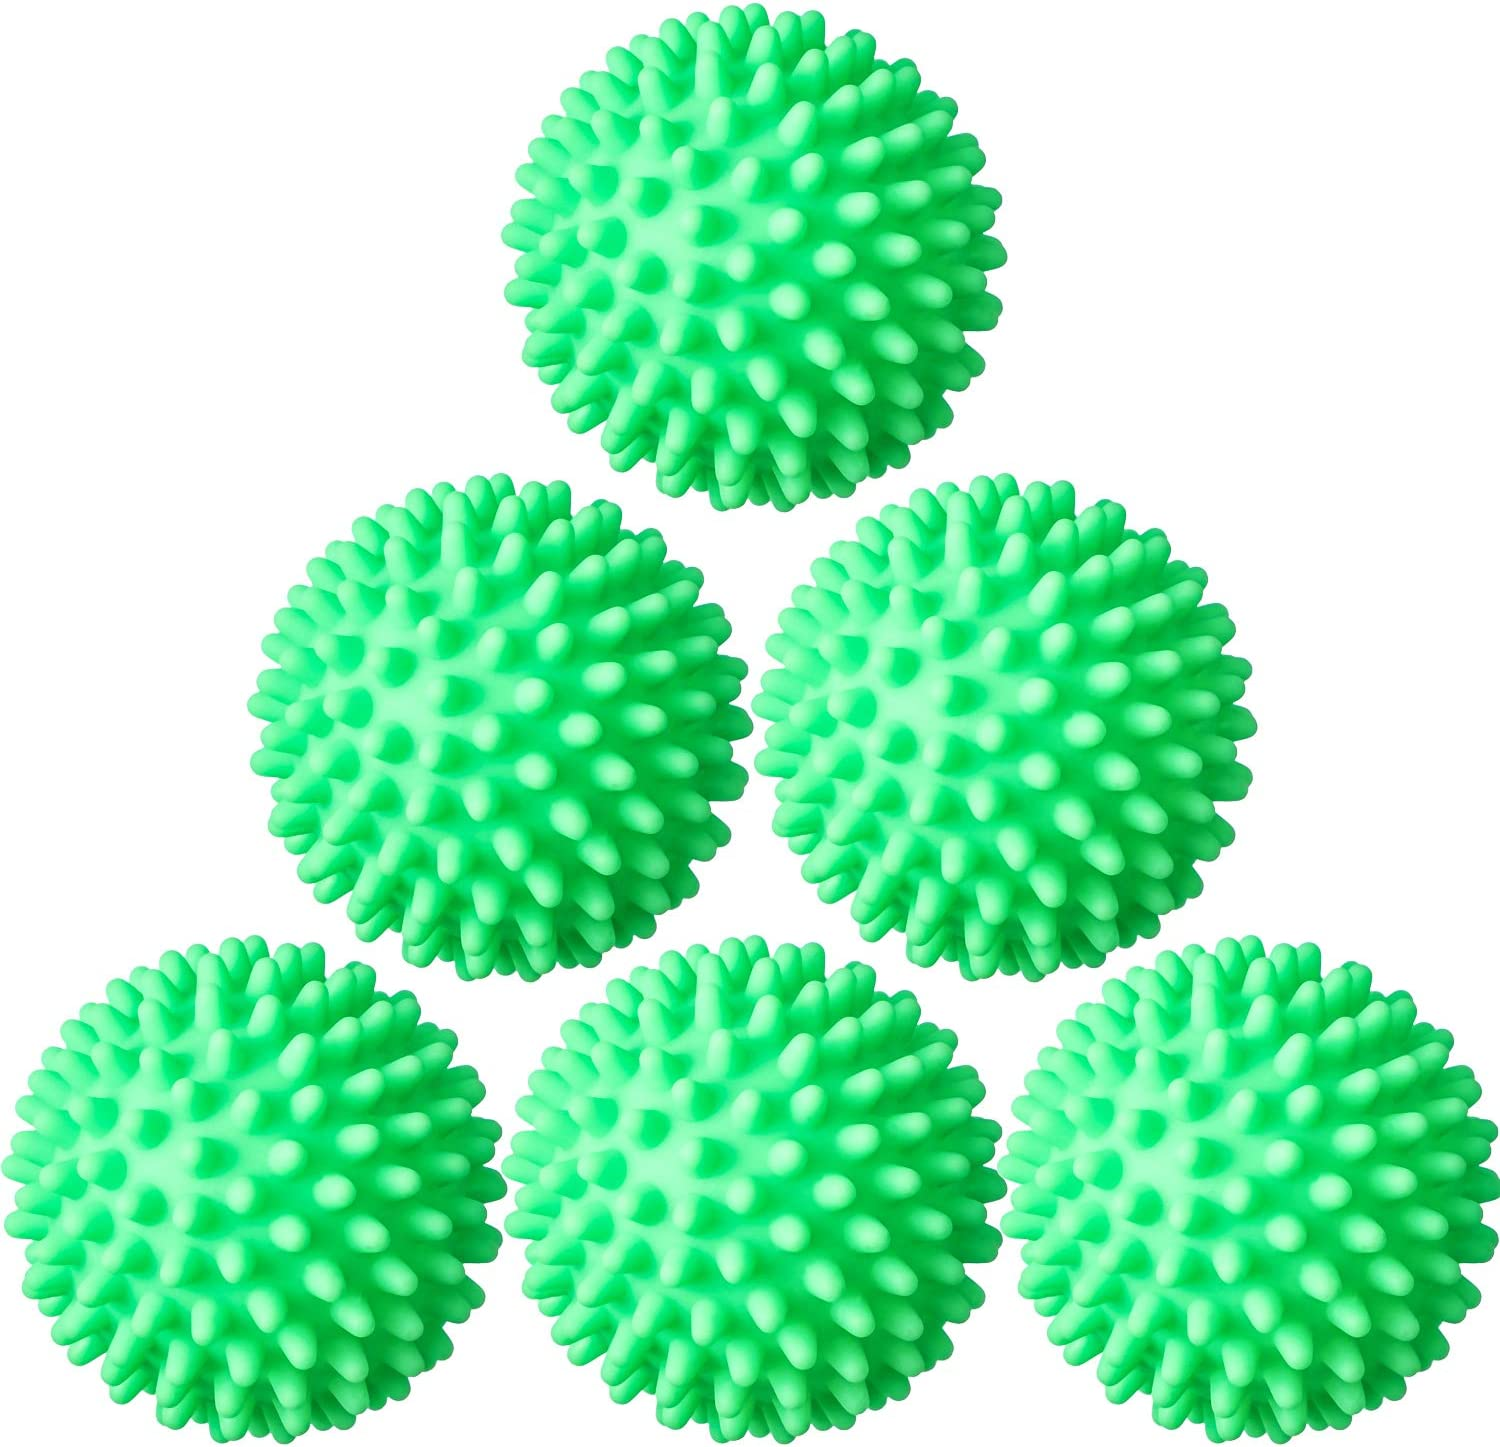 6 Pieces Laundry Drying Balls, Reusable Dryer Balls, Replace Laundry Drying Fabric Softener and Saves, Reusable Washing Machine Dryer Cleaning Soften Clothes Wash Ball (Green)